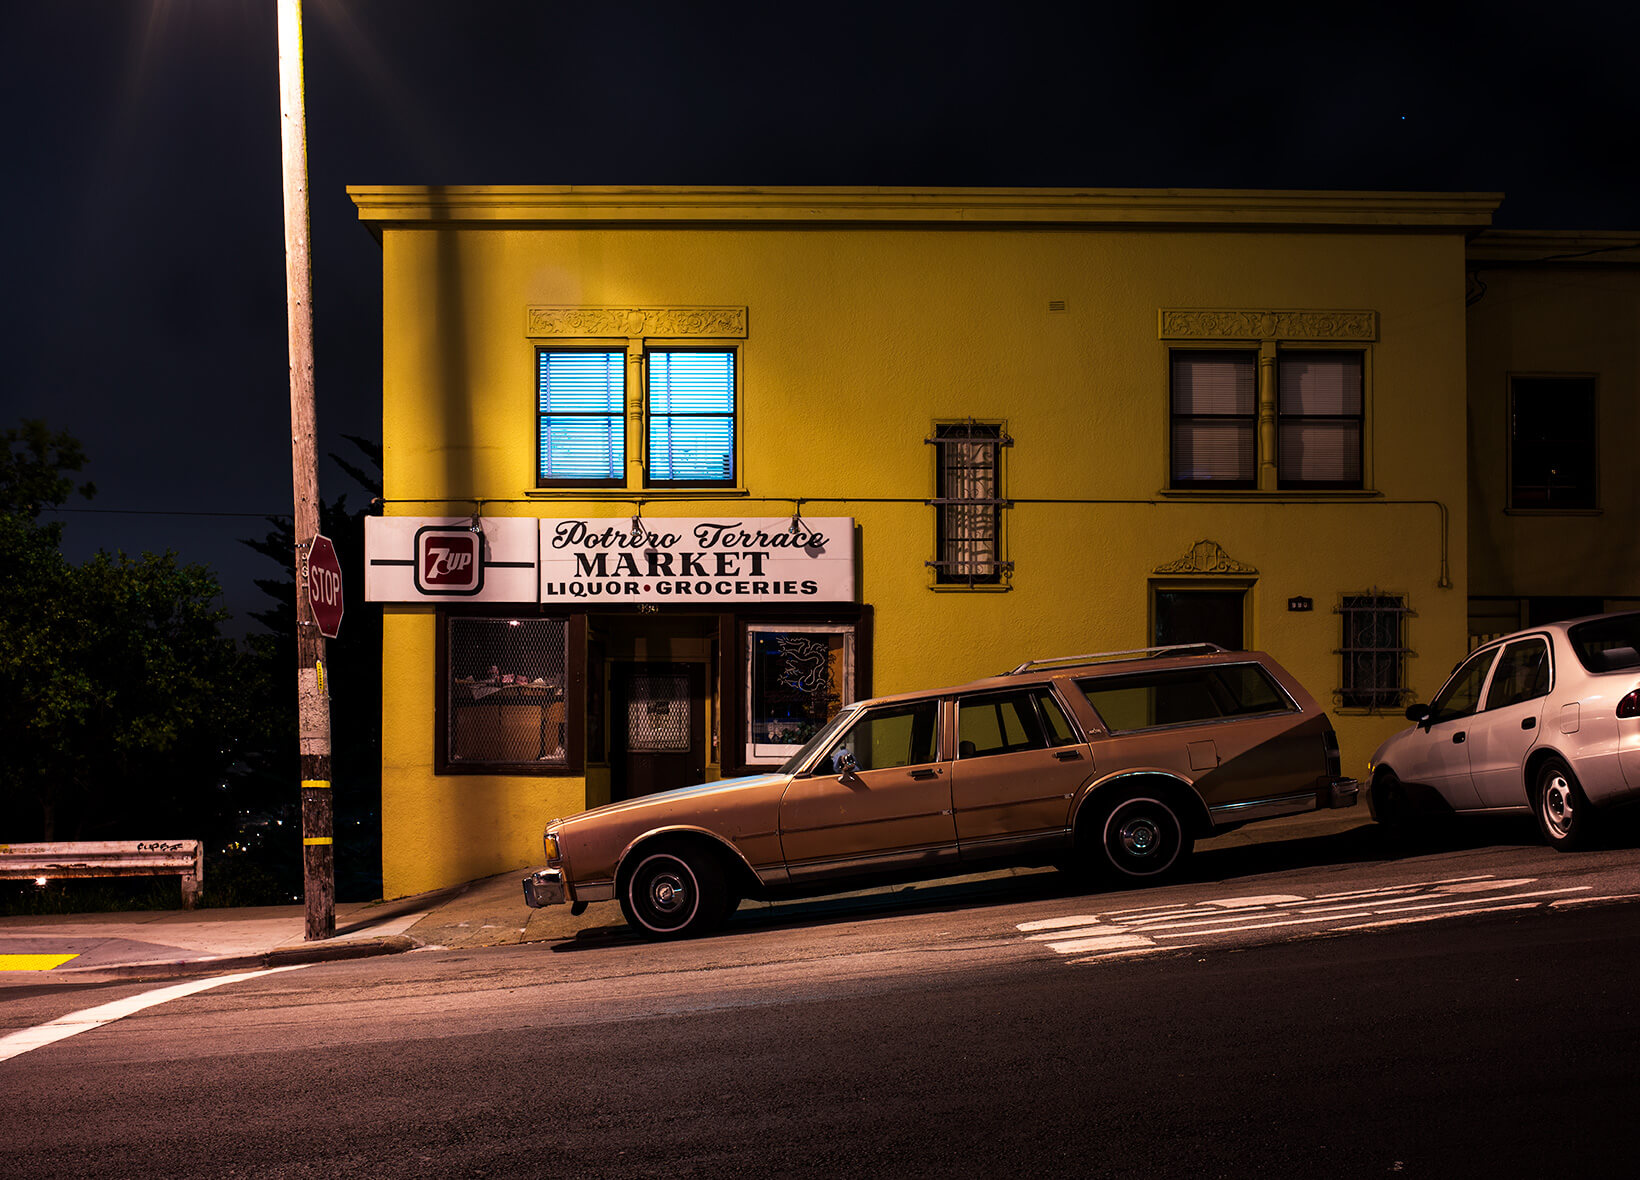 Station wagon at night in front of liquor store in Potrero Hill, San Francisco.